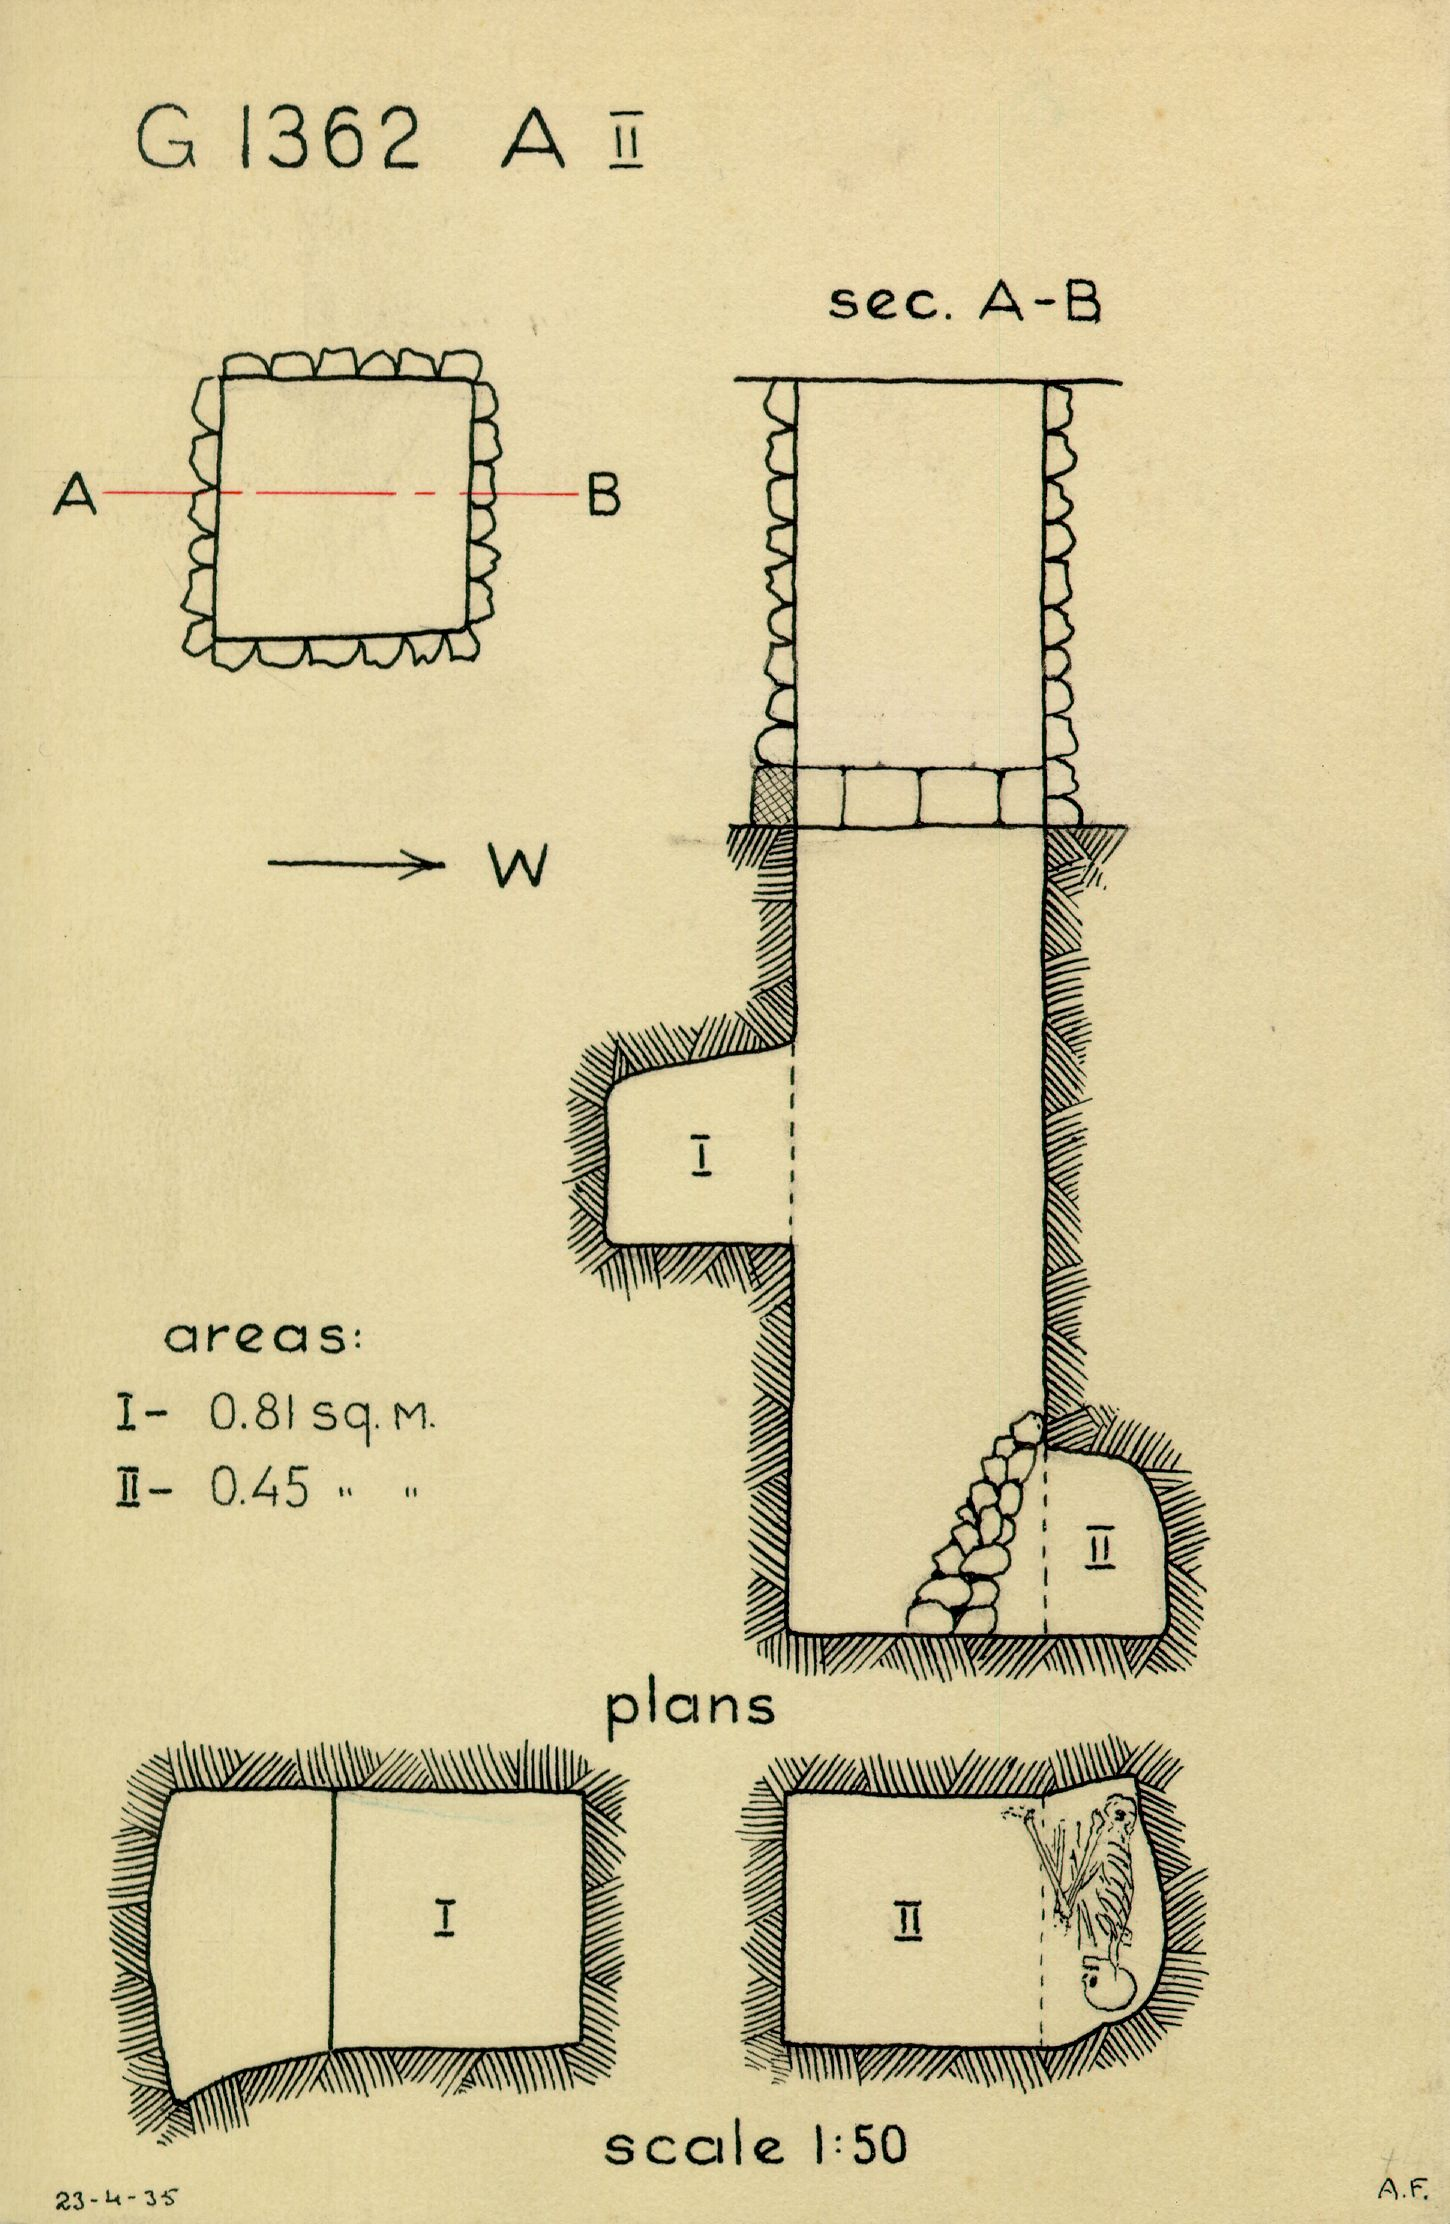 Maps and plans: G 1362, Shaft A (II)